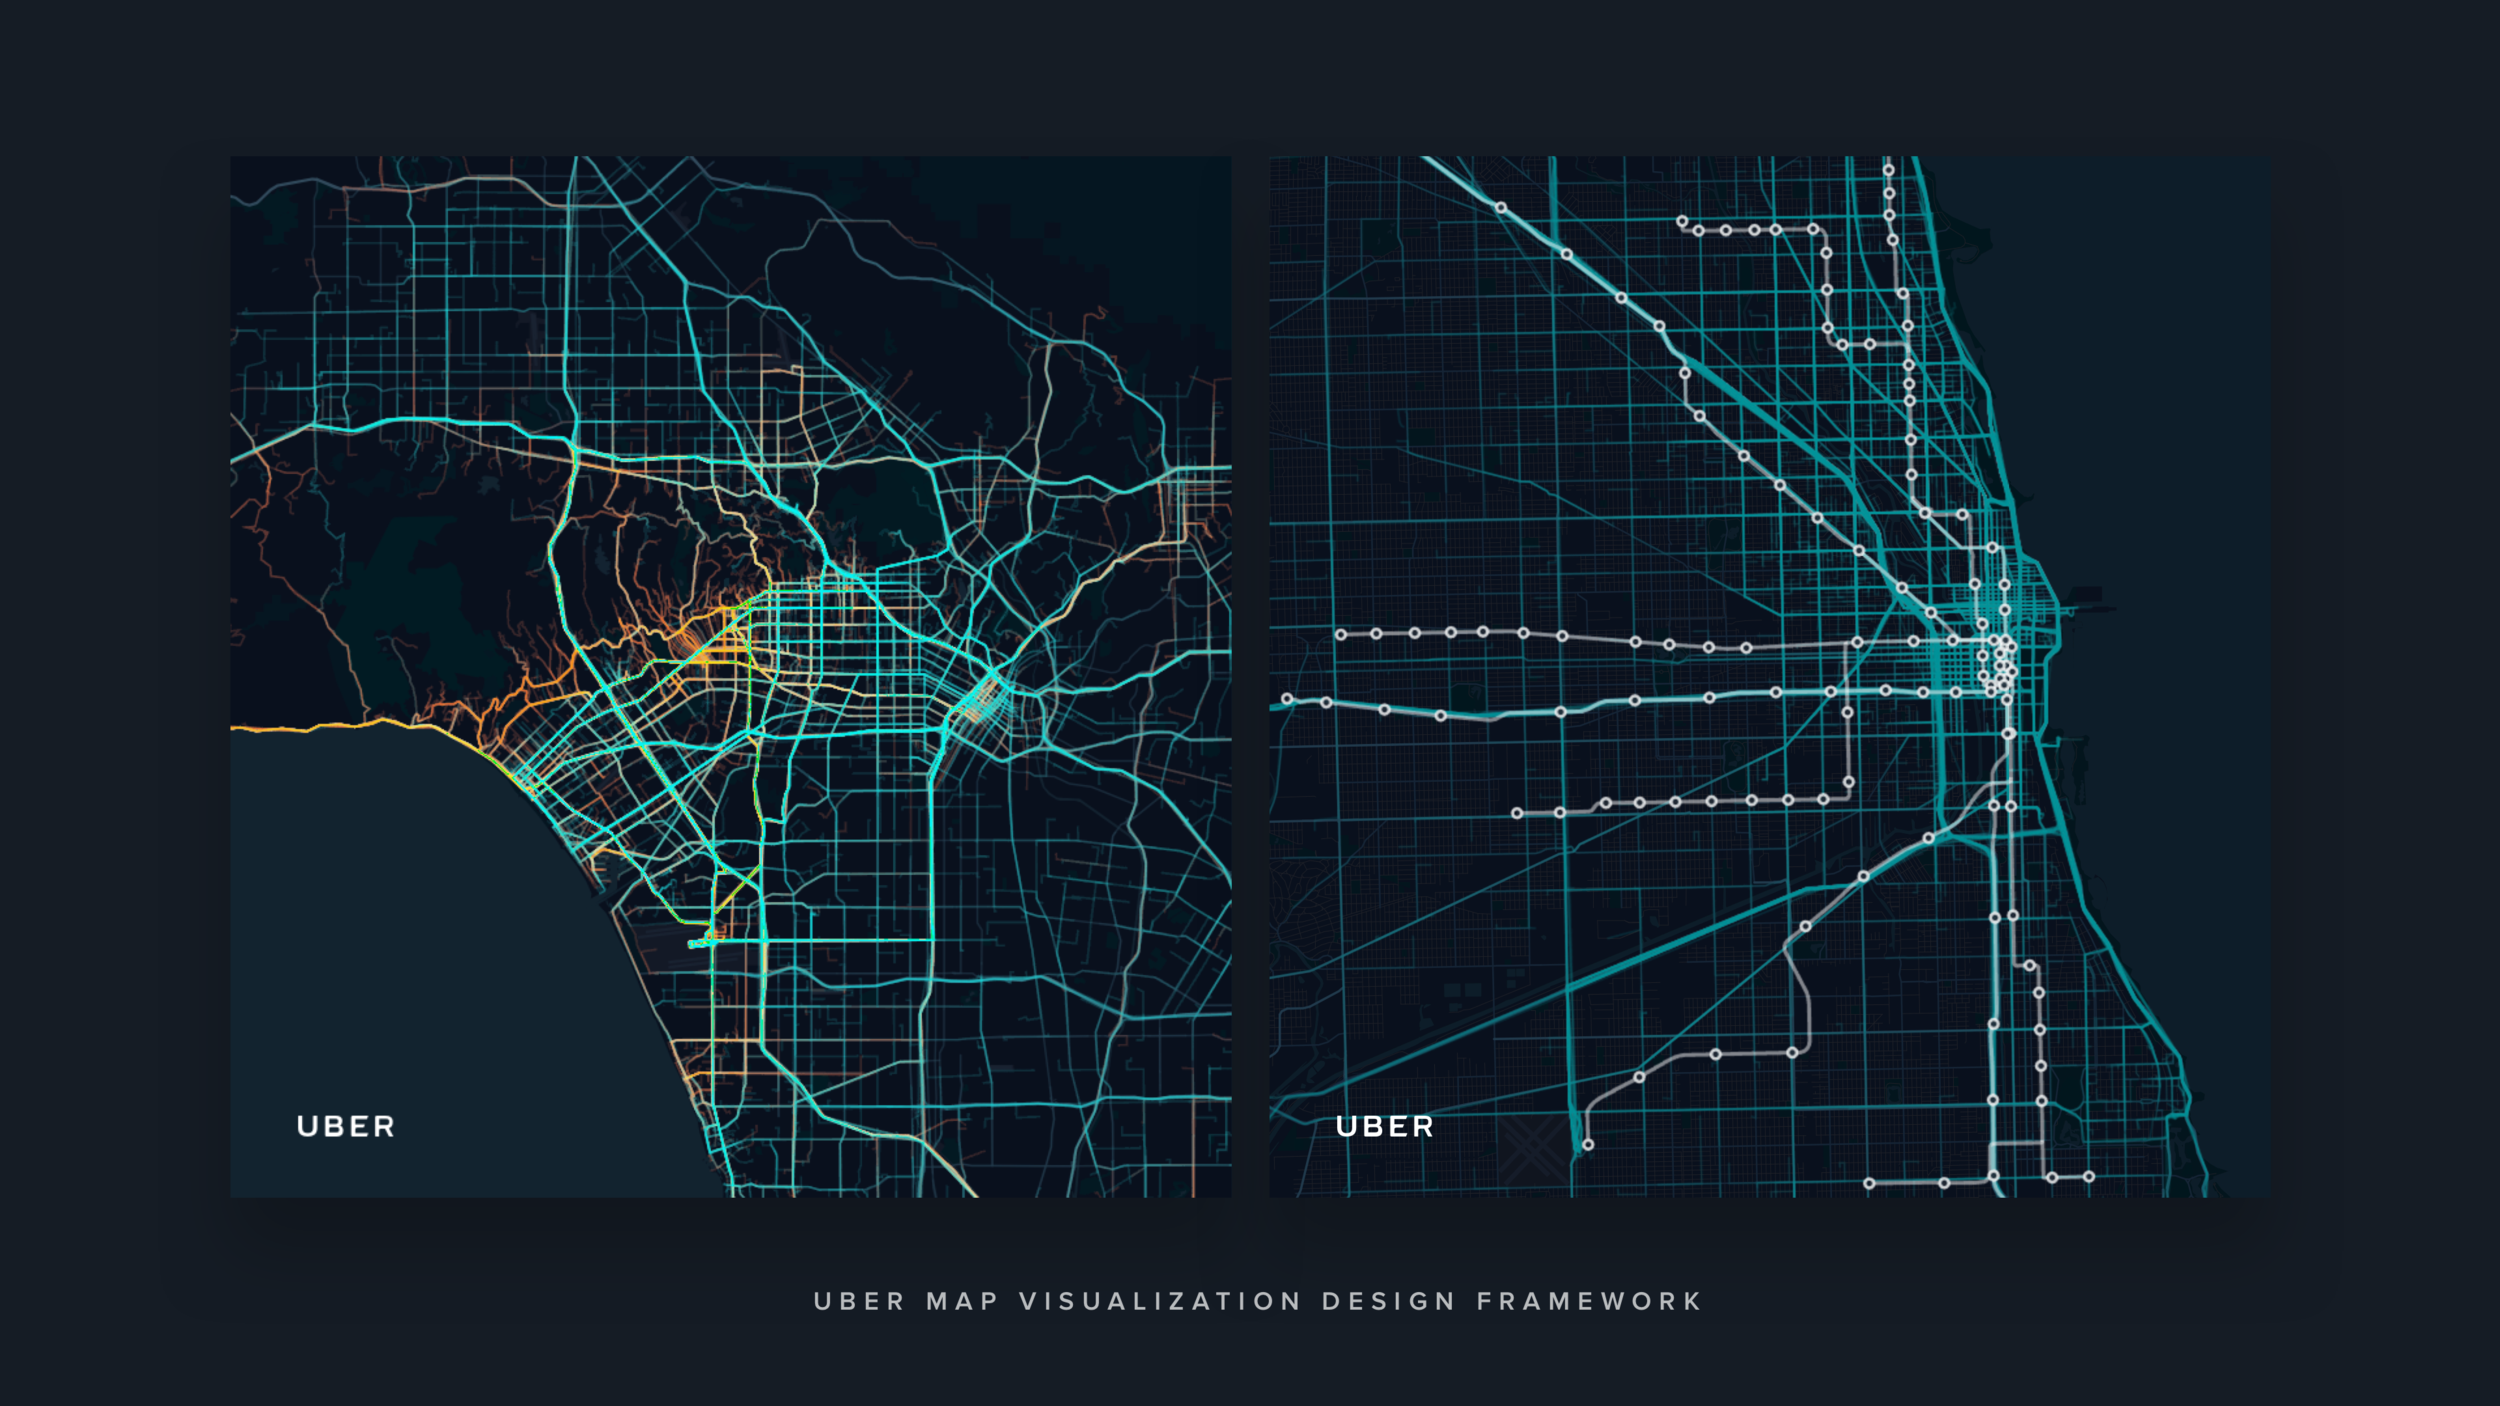 UBER Map Visualization Design Framework